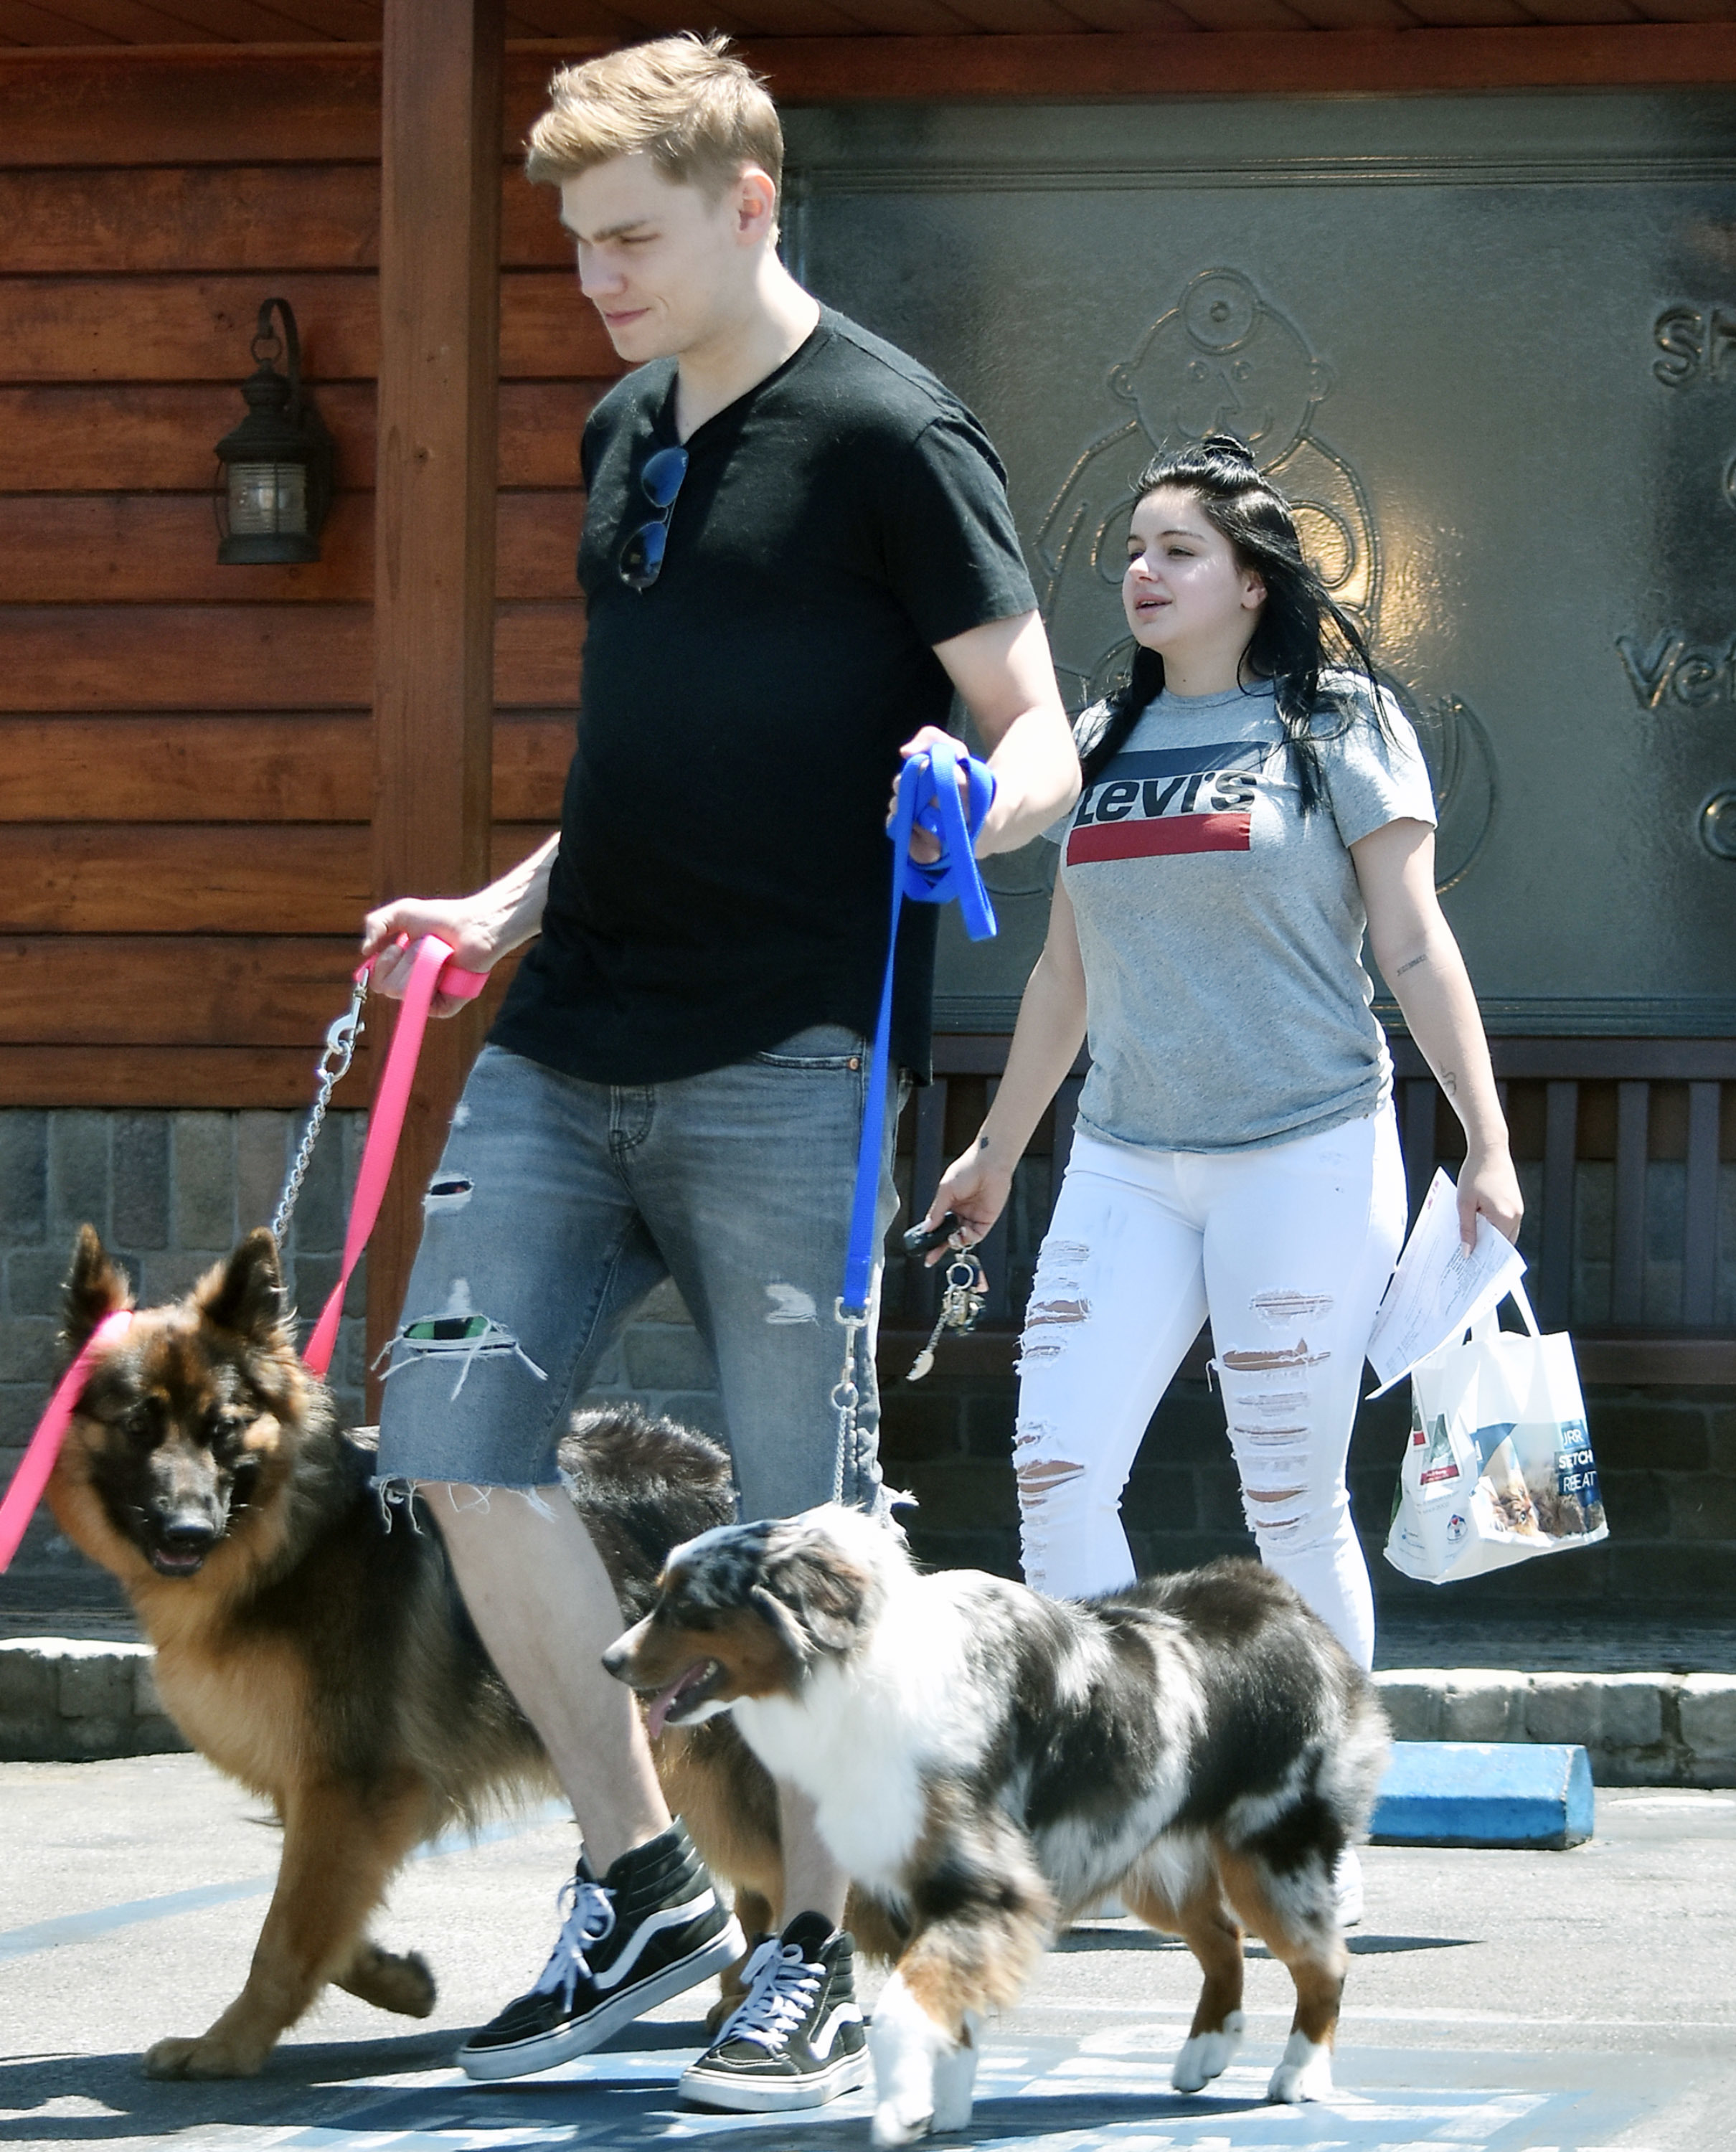 Ariel Winter and Levi Meaden took their dogs for a walk in Los Angeles on July 2, 2018.